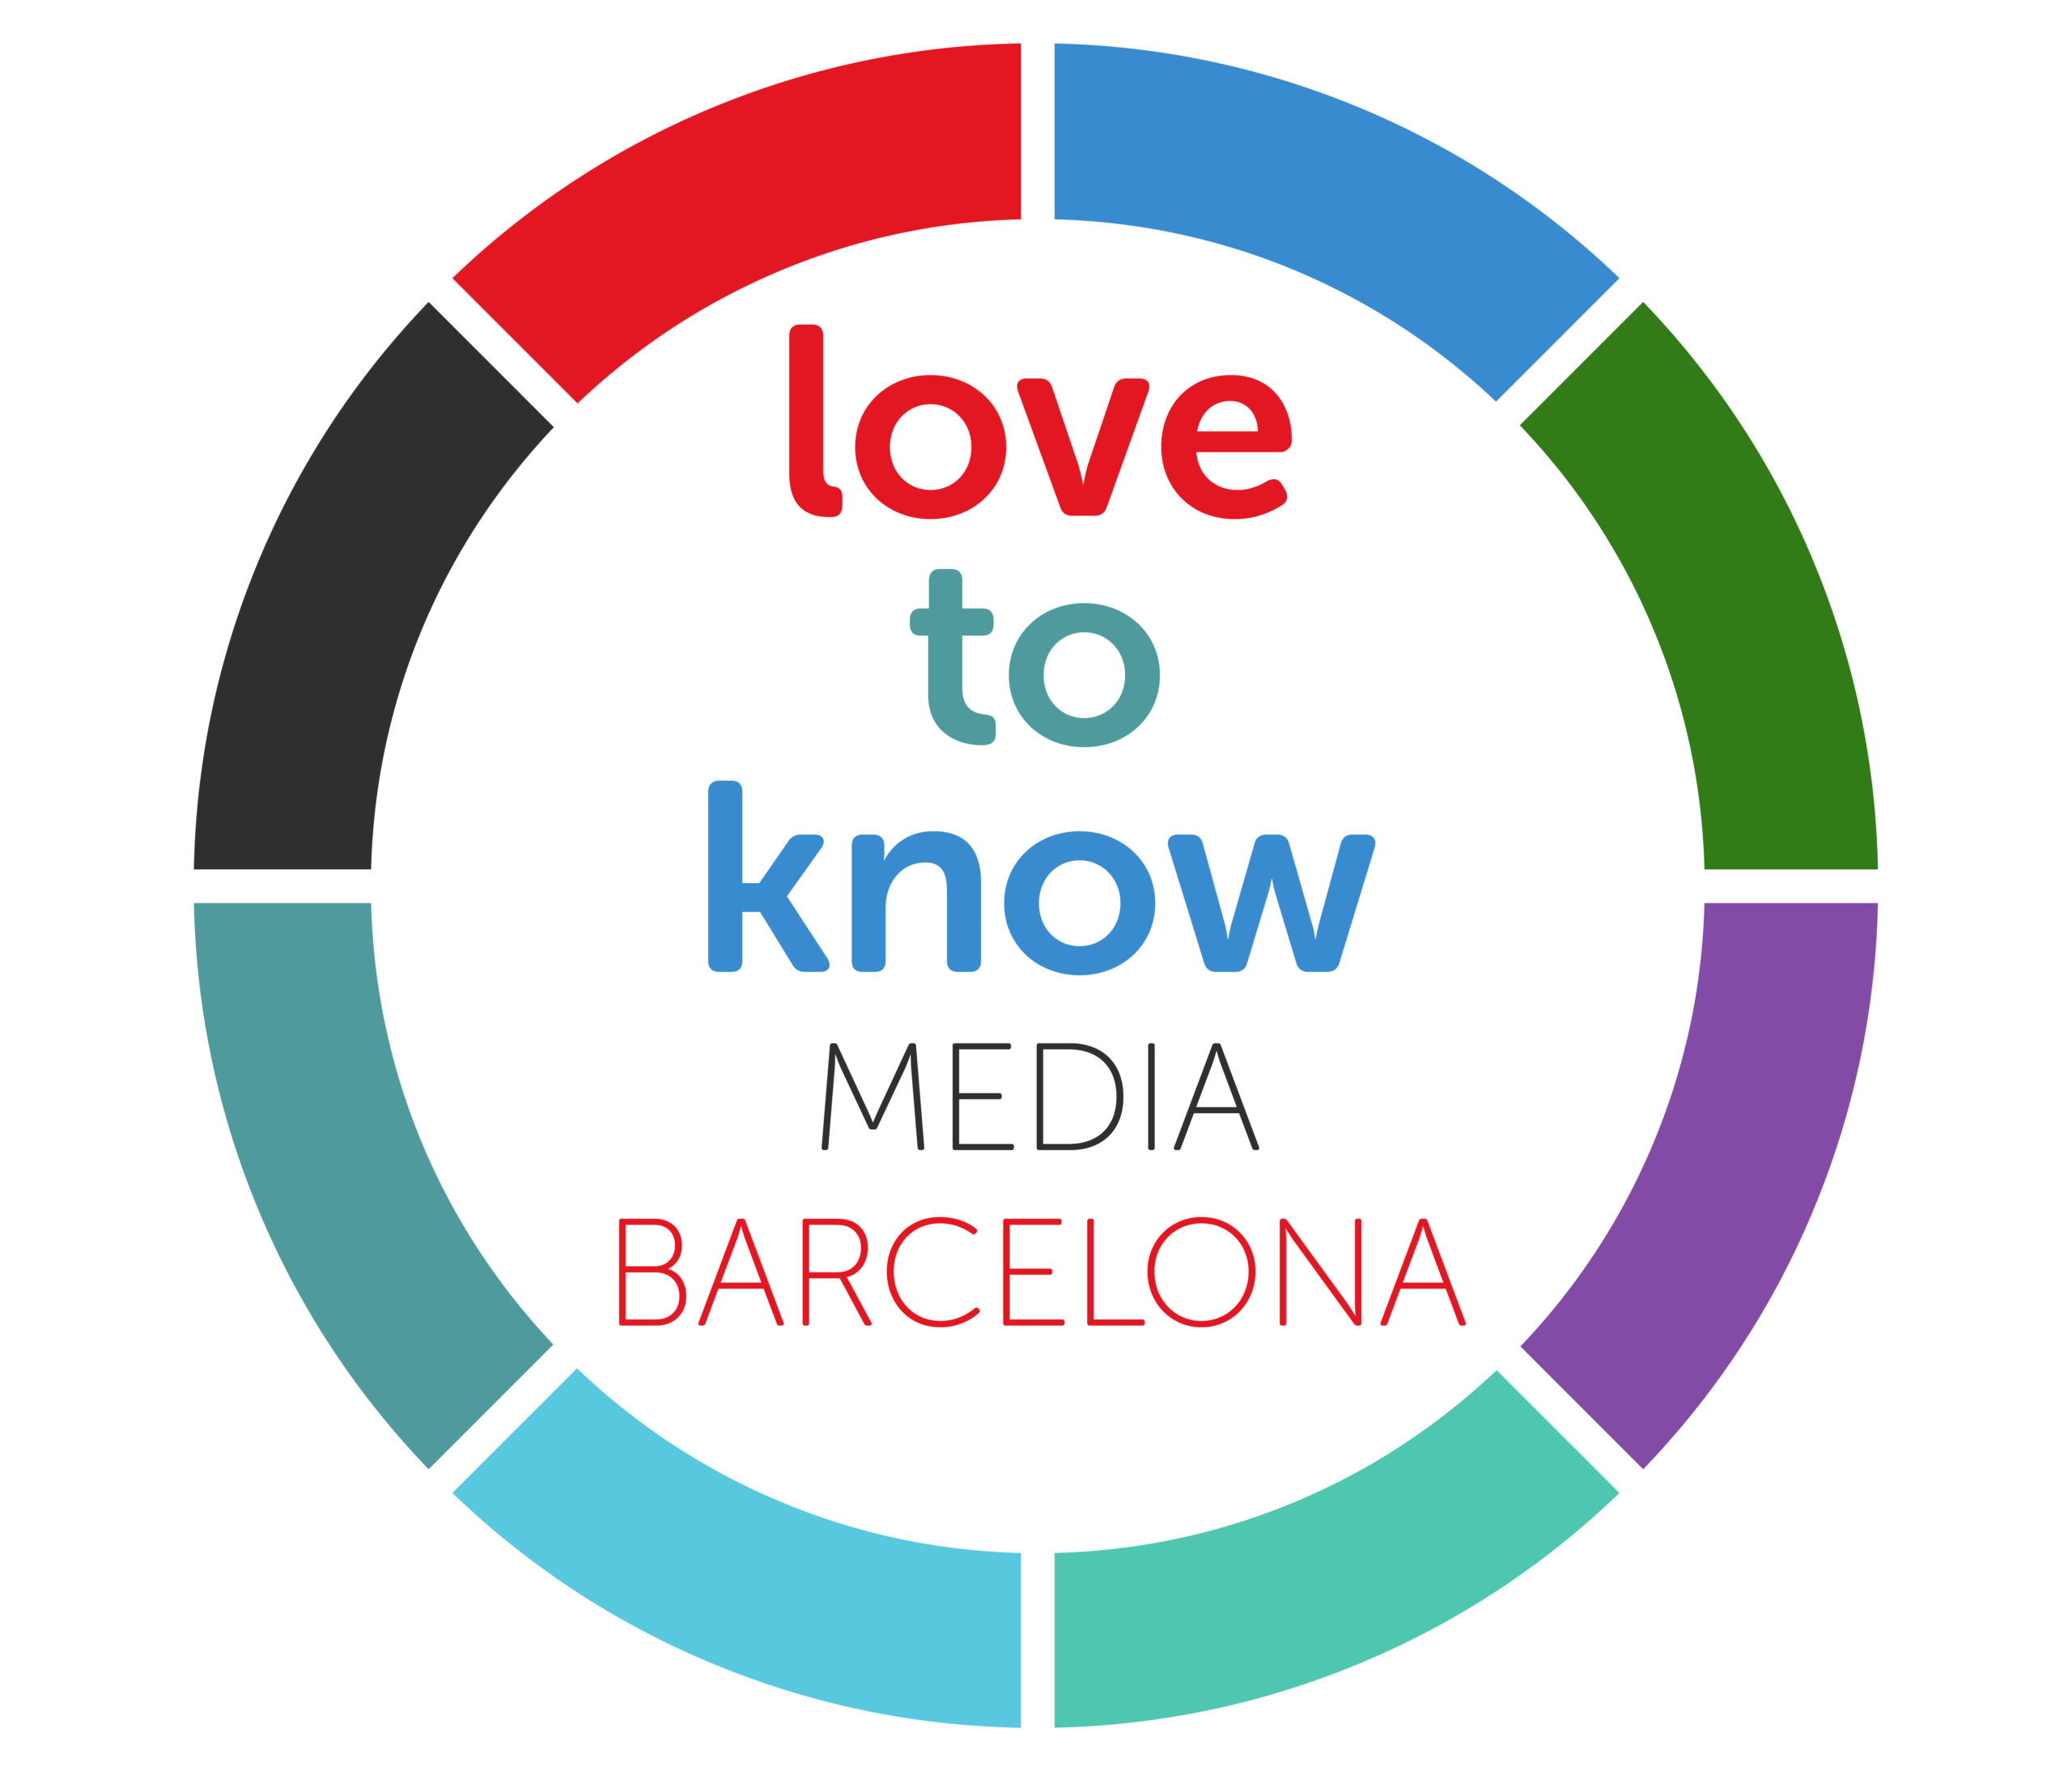 About LoveToKnow.com